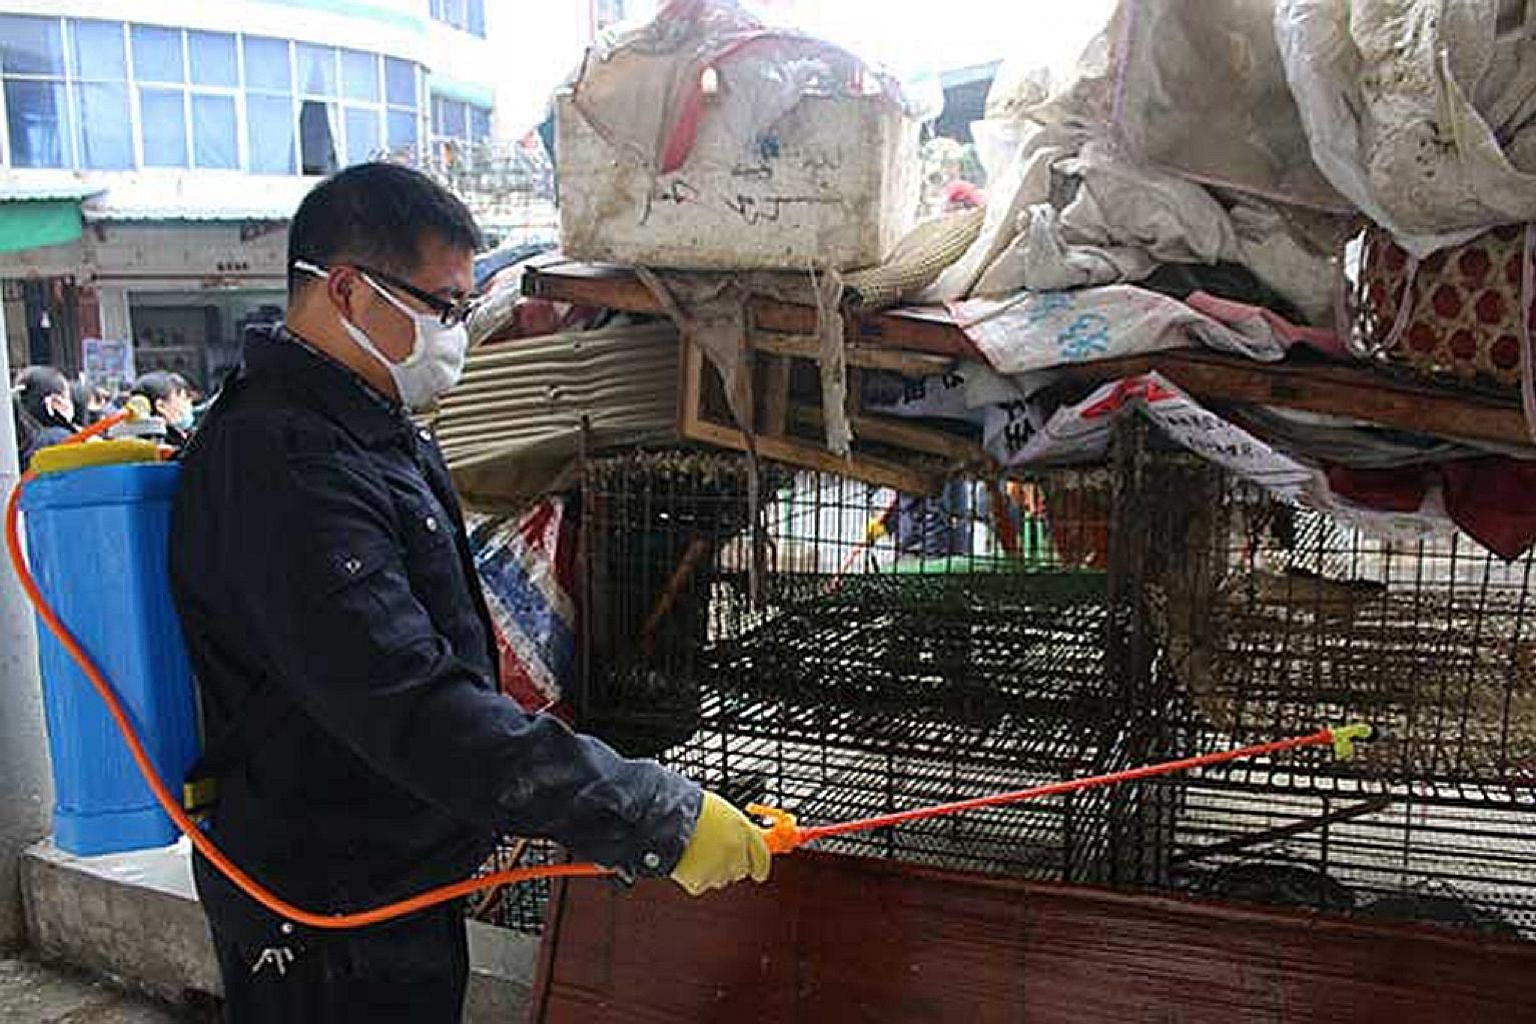 A poultry market in Jiangxi province being disinfected on Sunday as China steps up prevention measures against bird flu. Already, some live poultry markets have been closed after people and chickens were infected by the avian flu strains. China is th